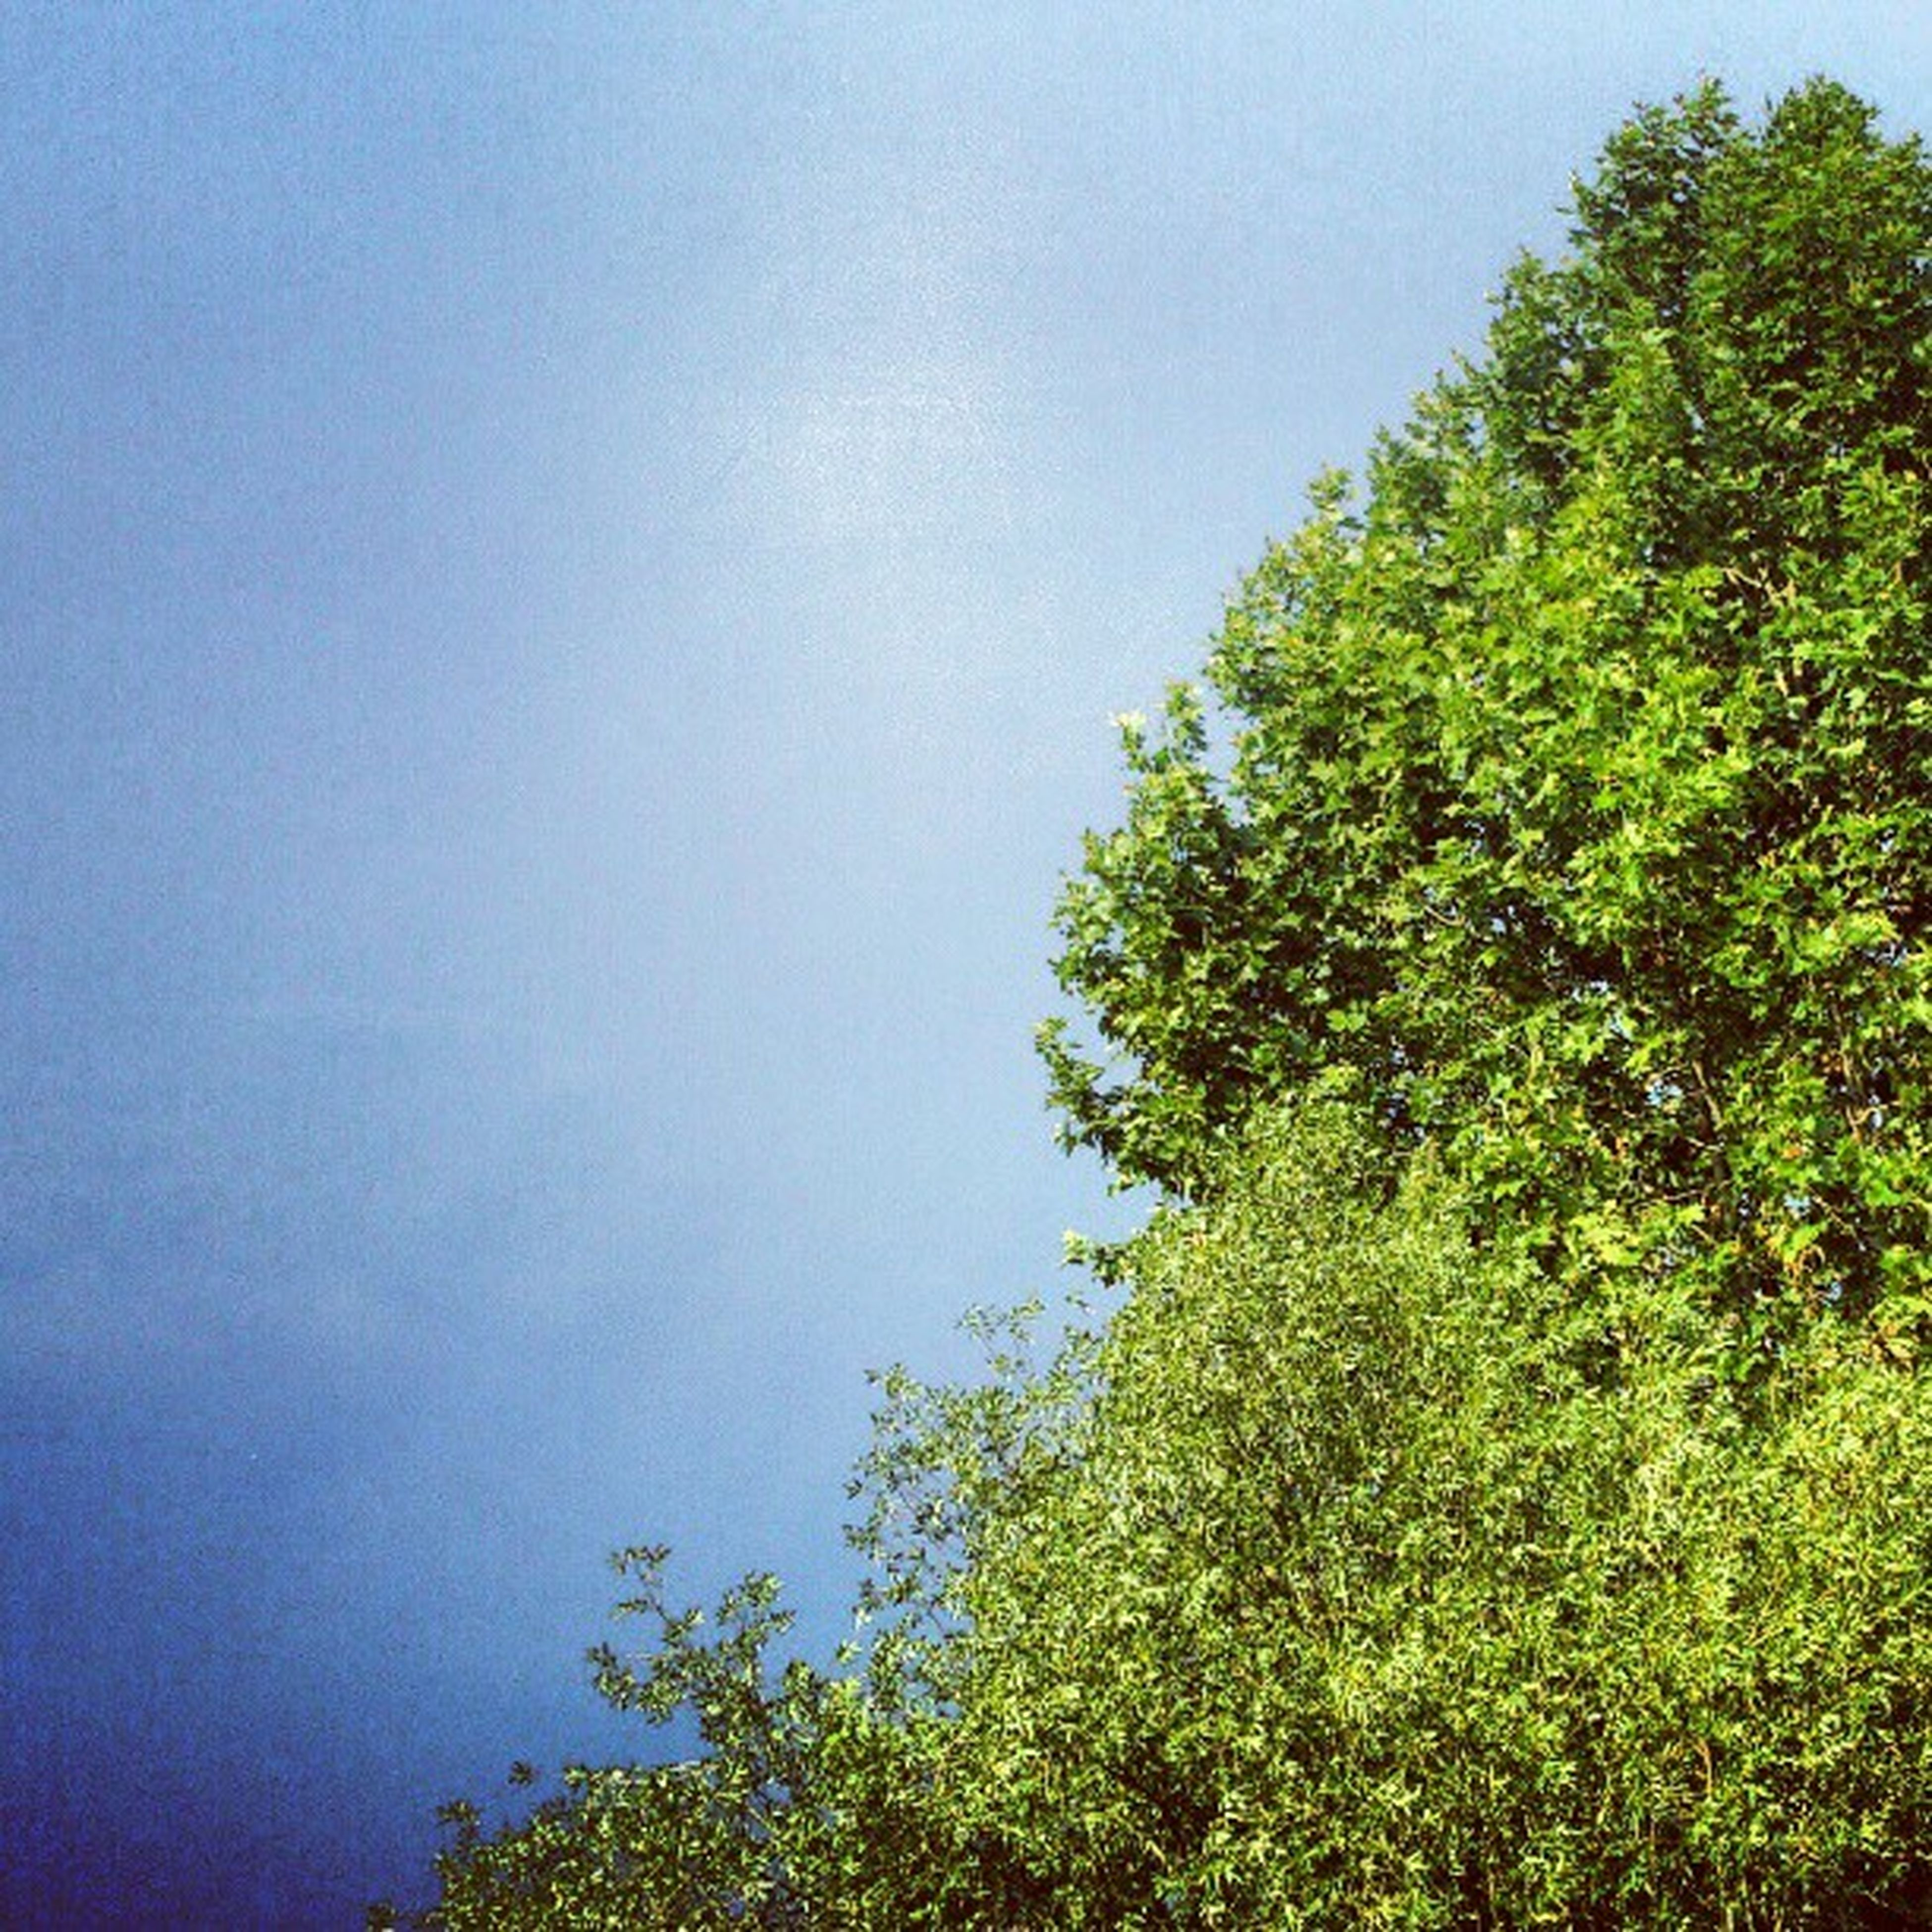 tree, clear sky, growth, low angle view, tranquility, copy space, beauty in nature, green color, blue, nature, tranquil scene, scenics, sky, branch, lush foliage, green, day, outdoors, no people, idyllic